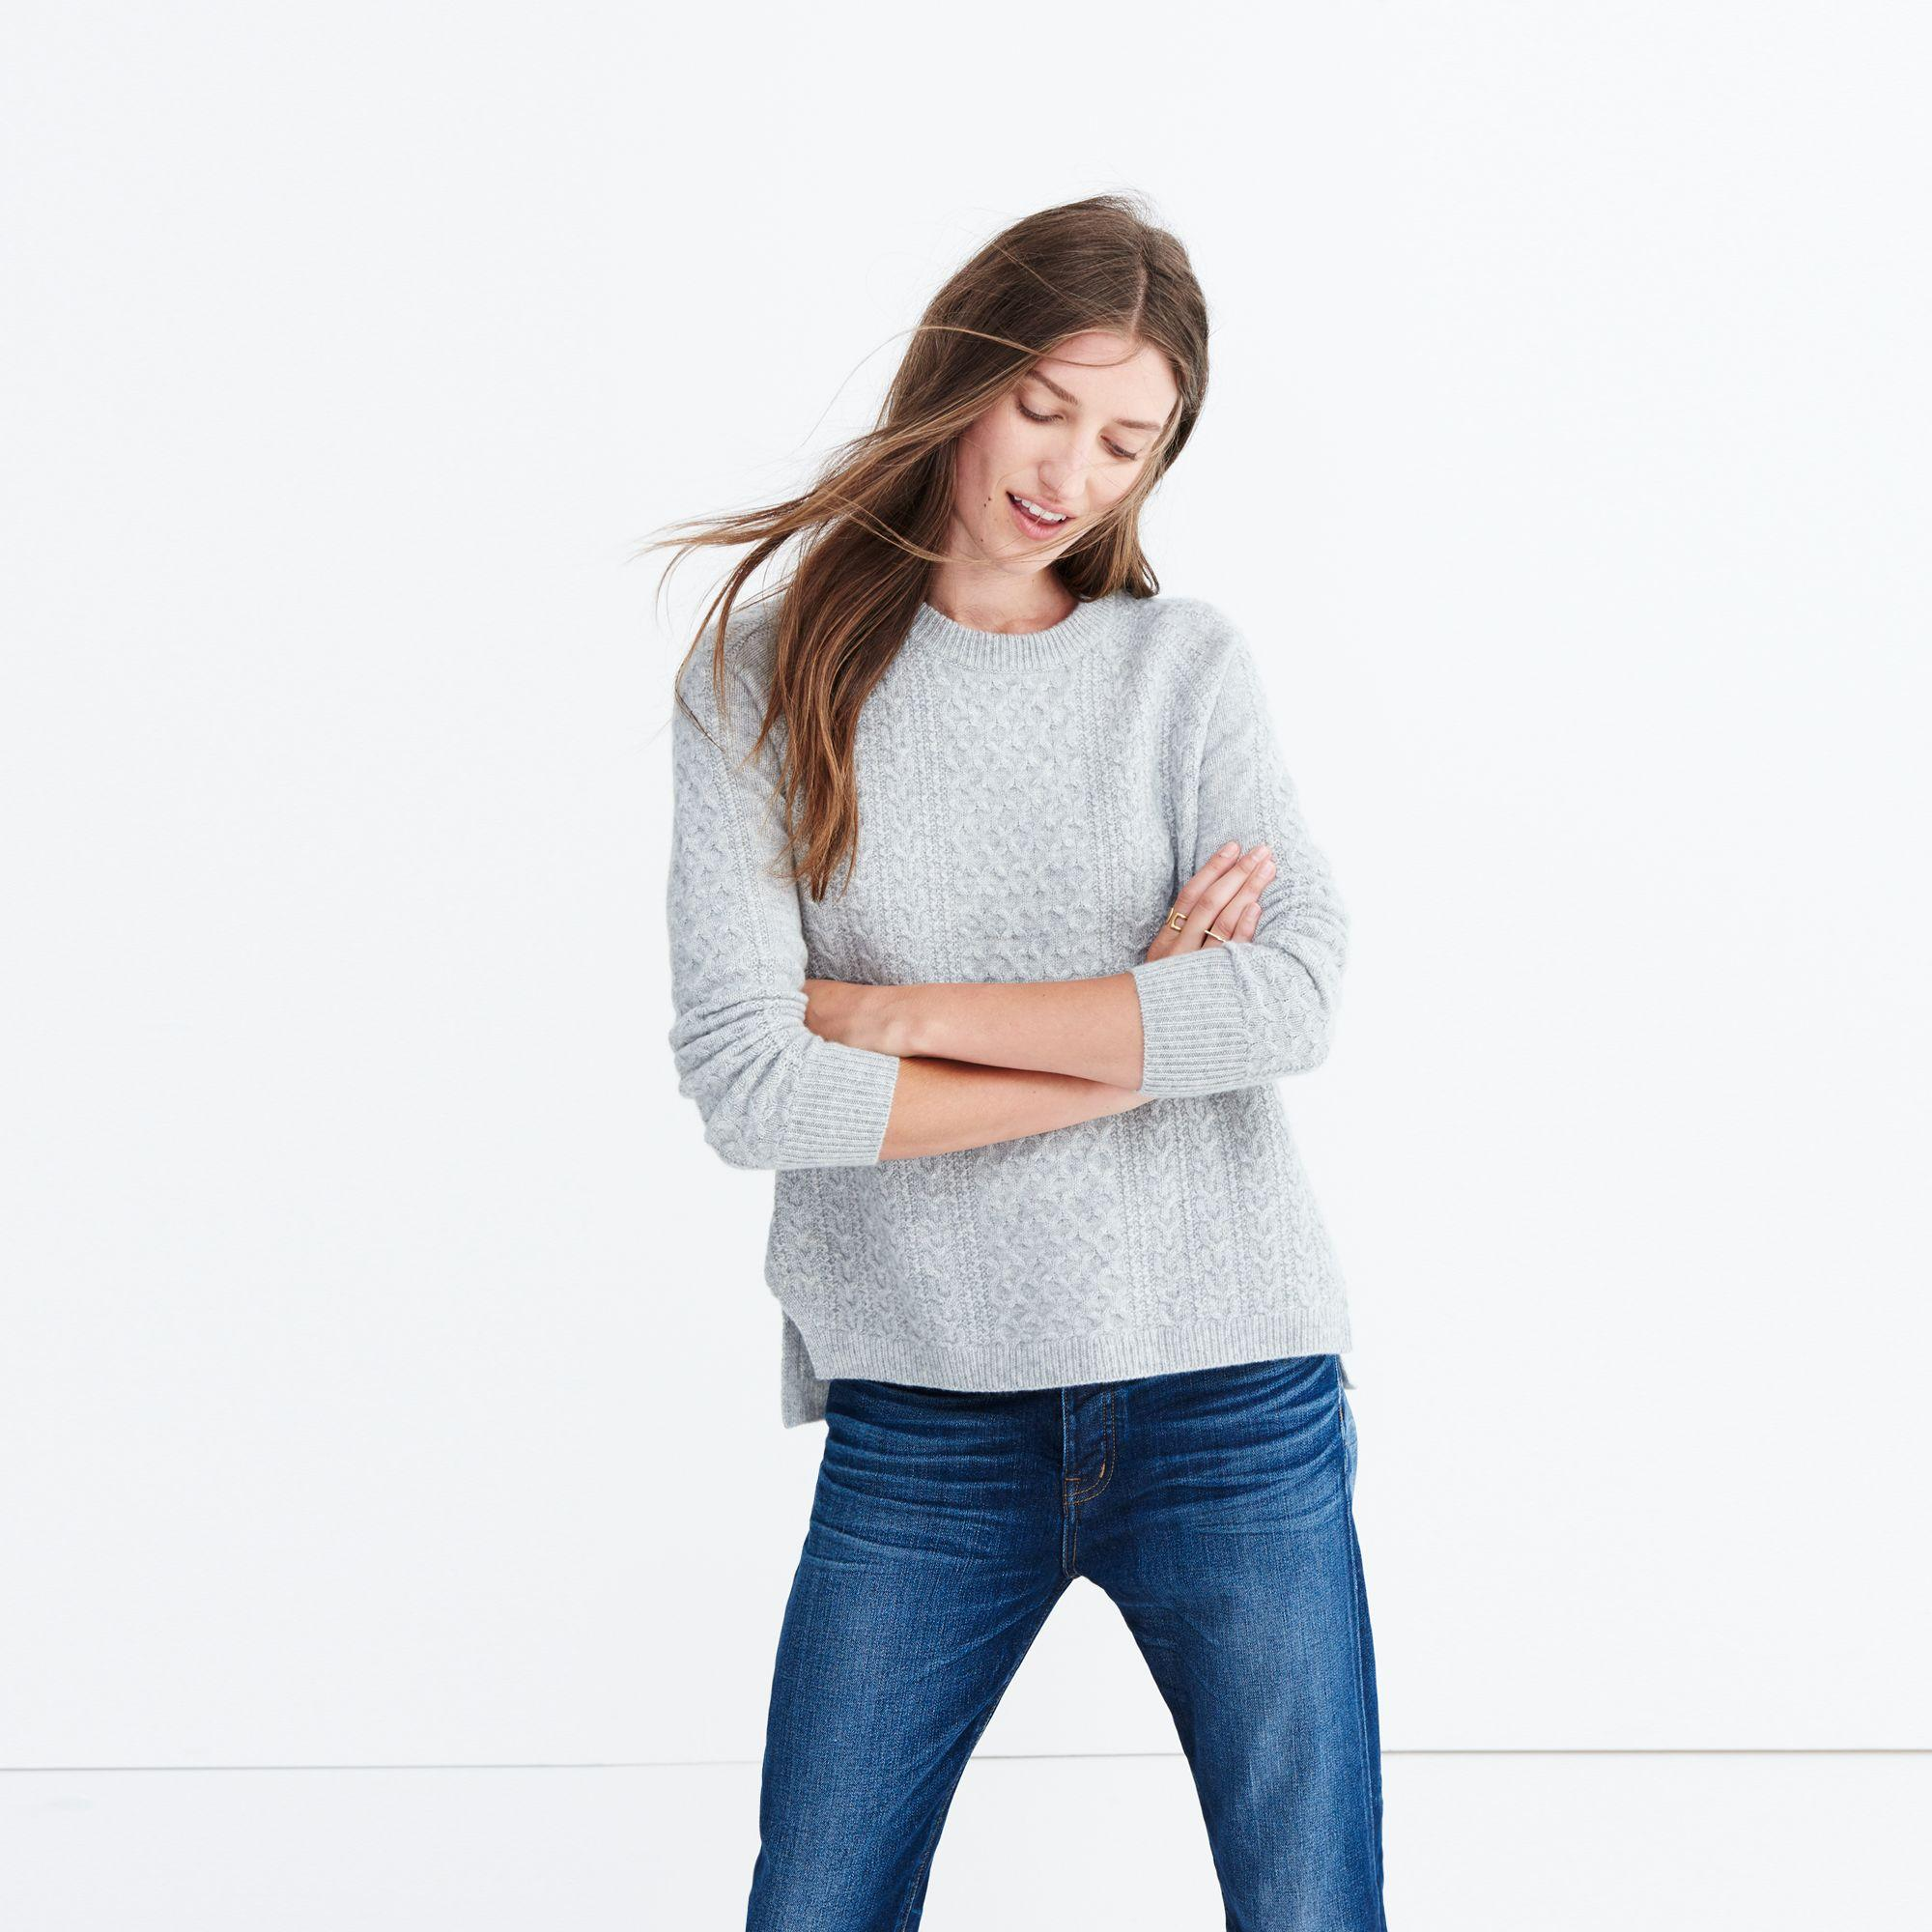 Madewell Cashmere Convertible Turtleneck Sweater In Cableknit in Grey